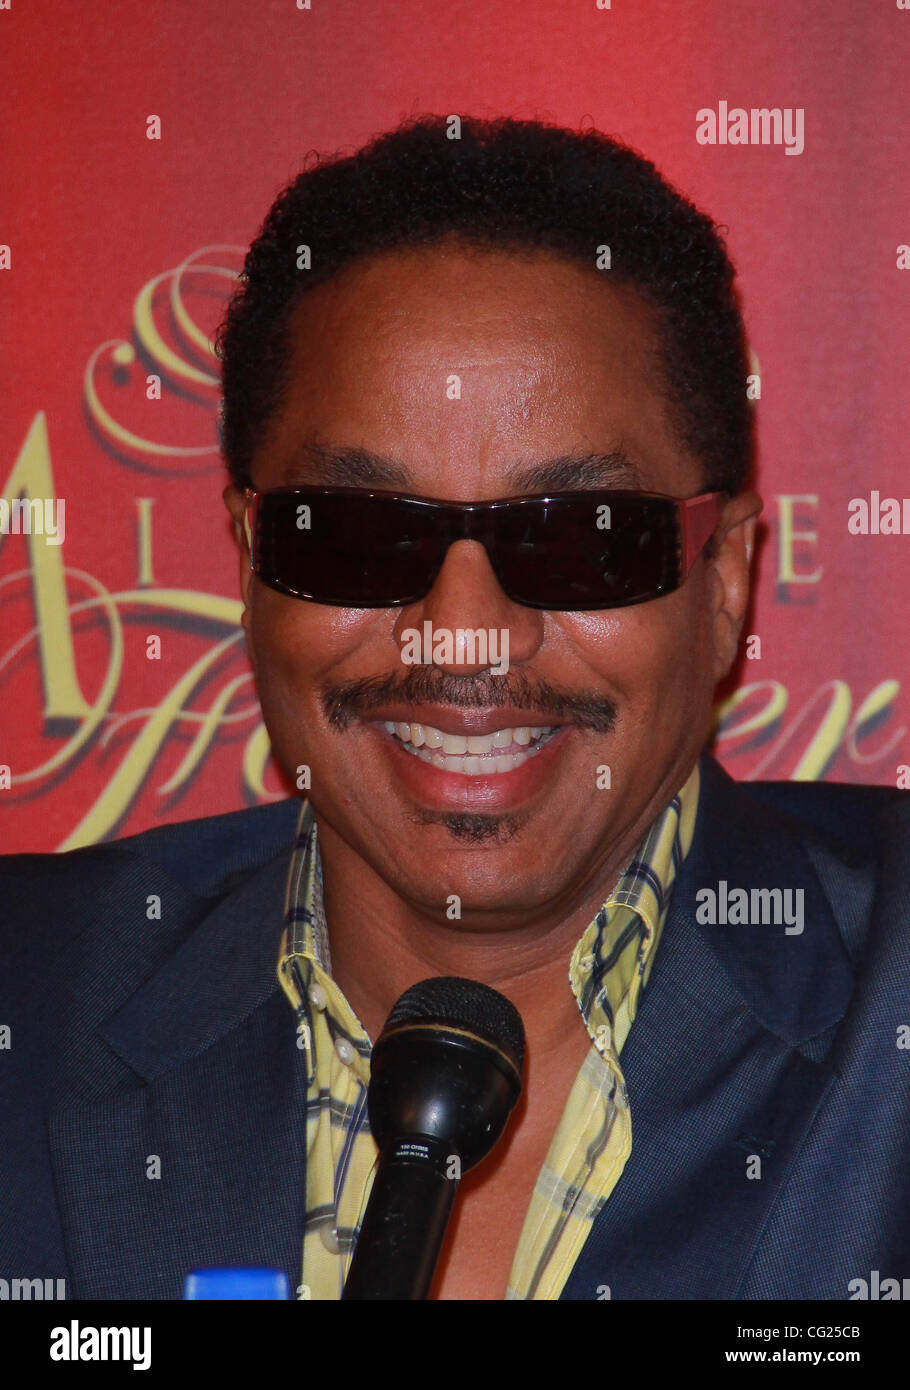 marlon jackson stock photos amp marlon jackson stock images